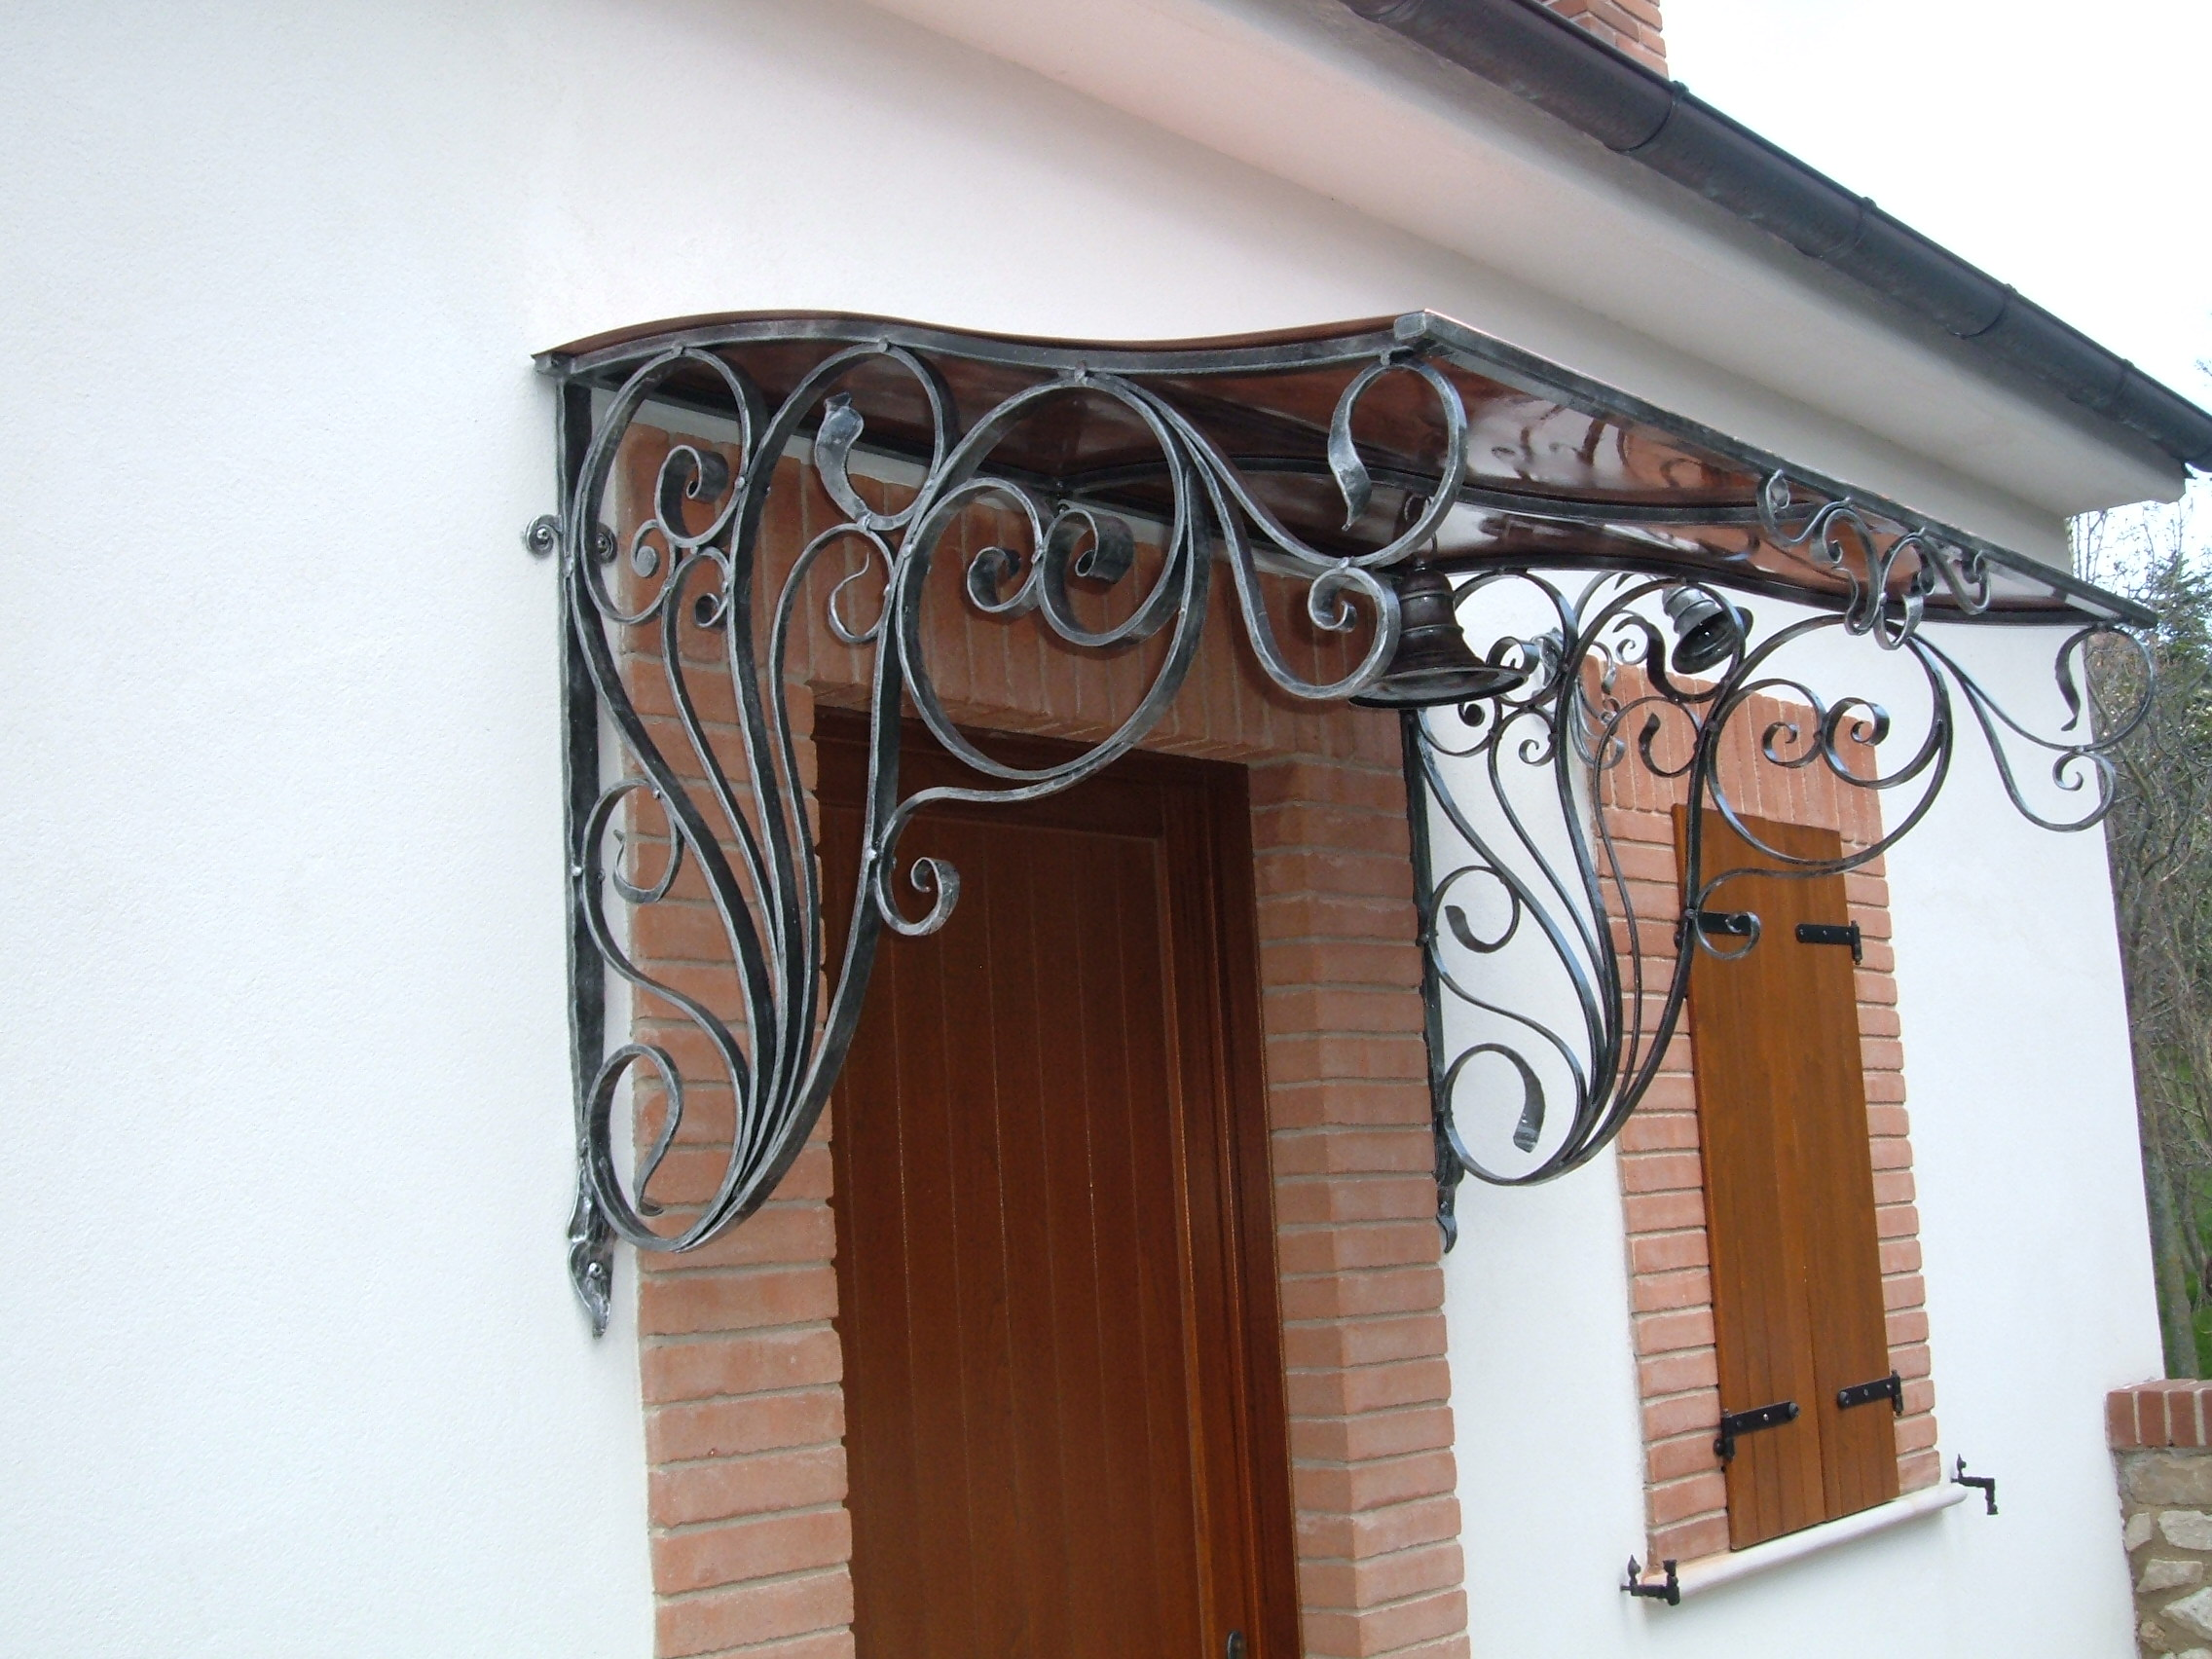 decorated wrought iron and copper canopy & Canopies: Wrought iron canopies canopies for terraces canopies ...